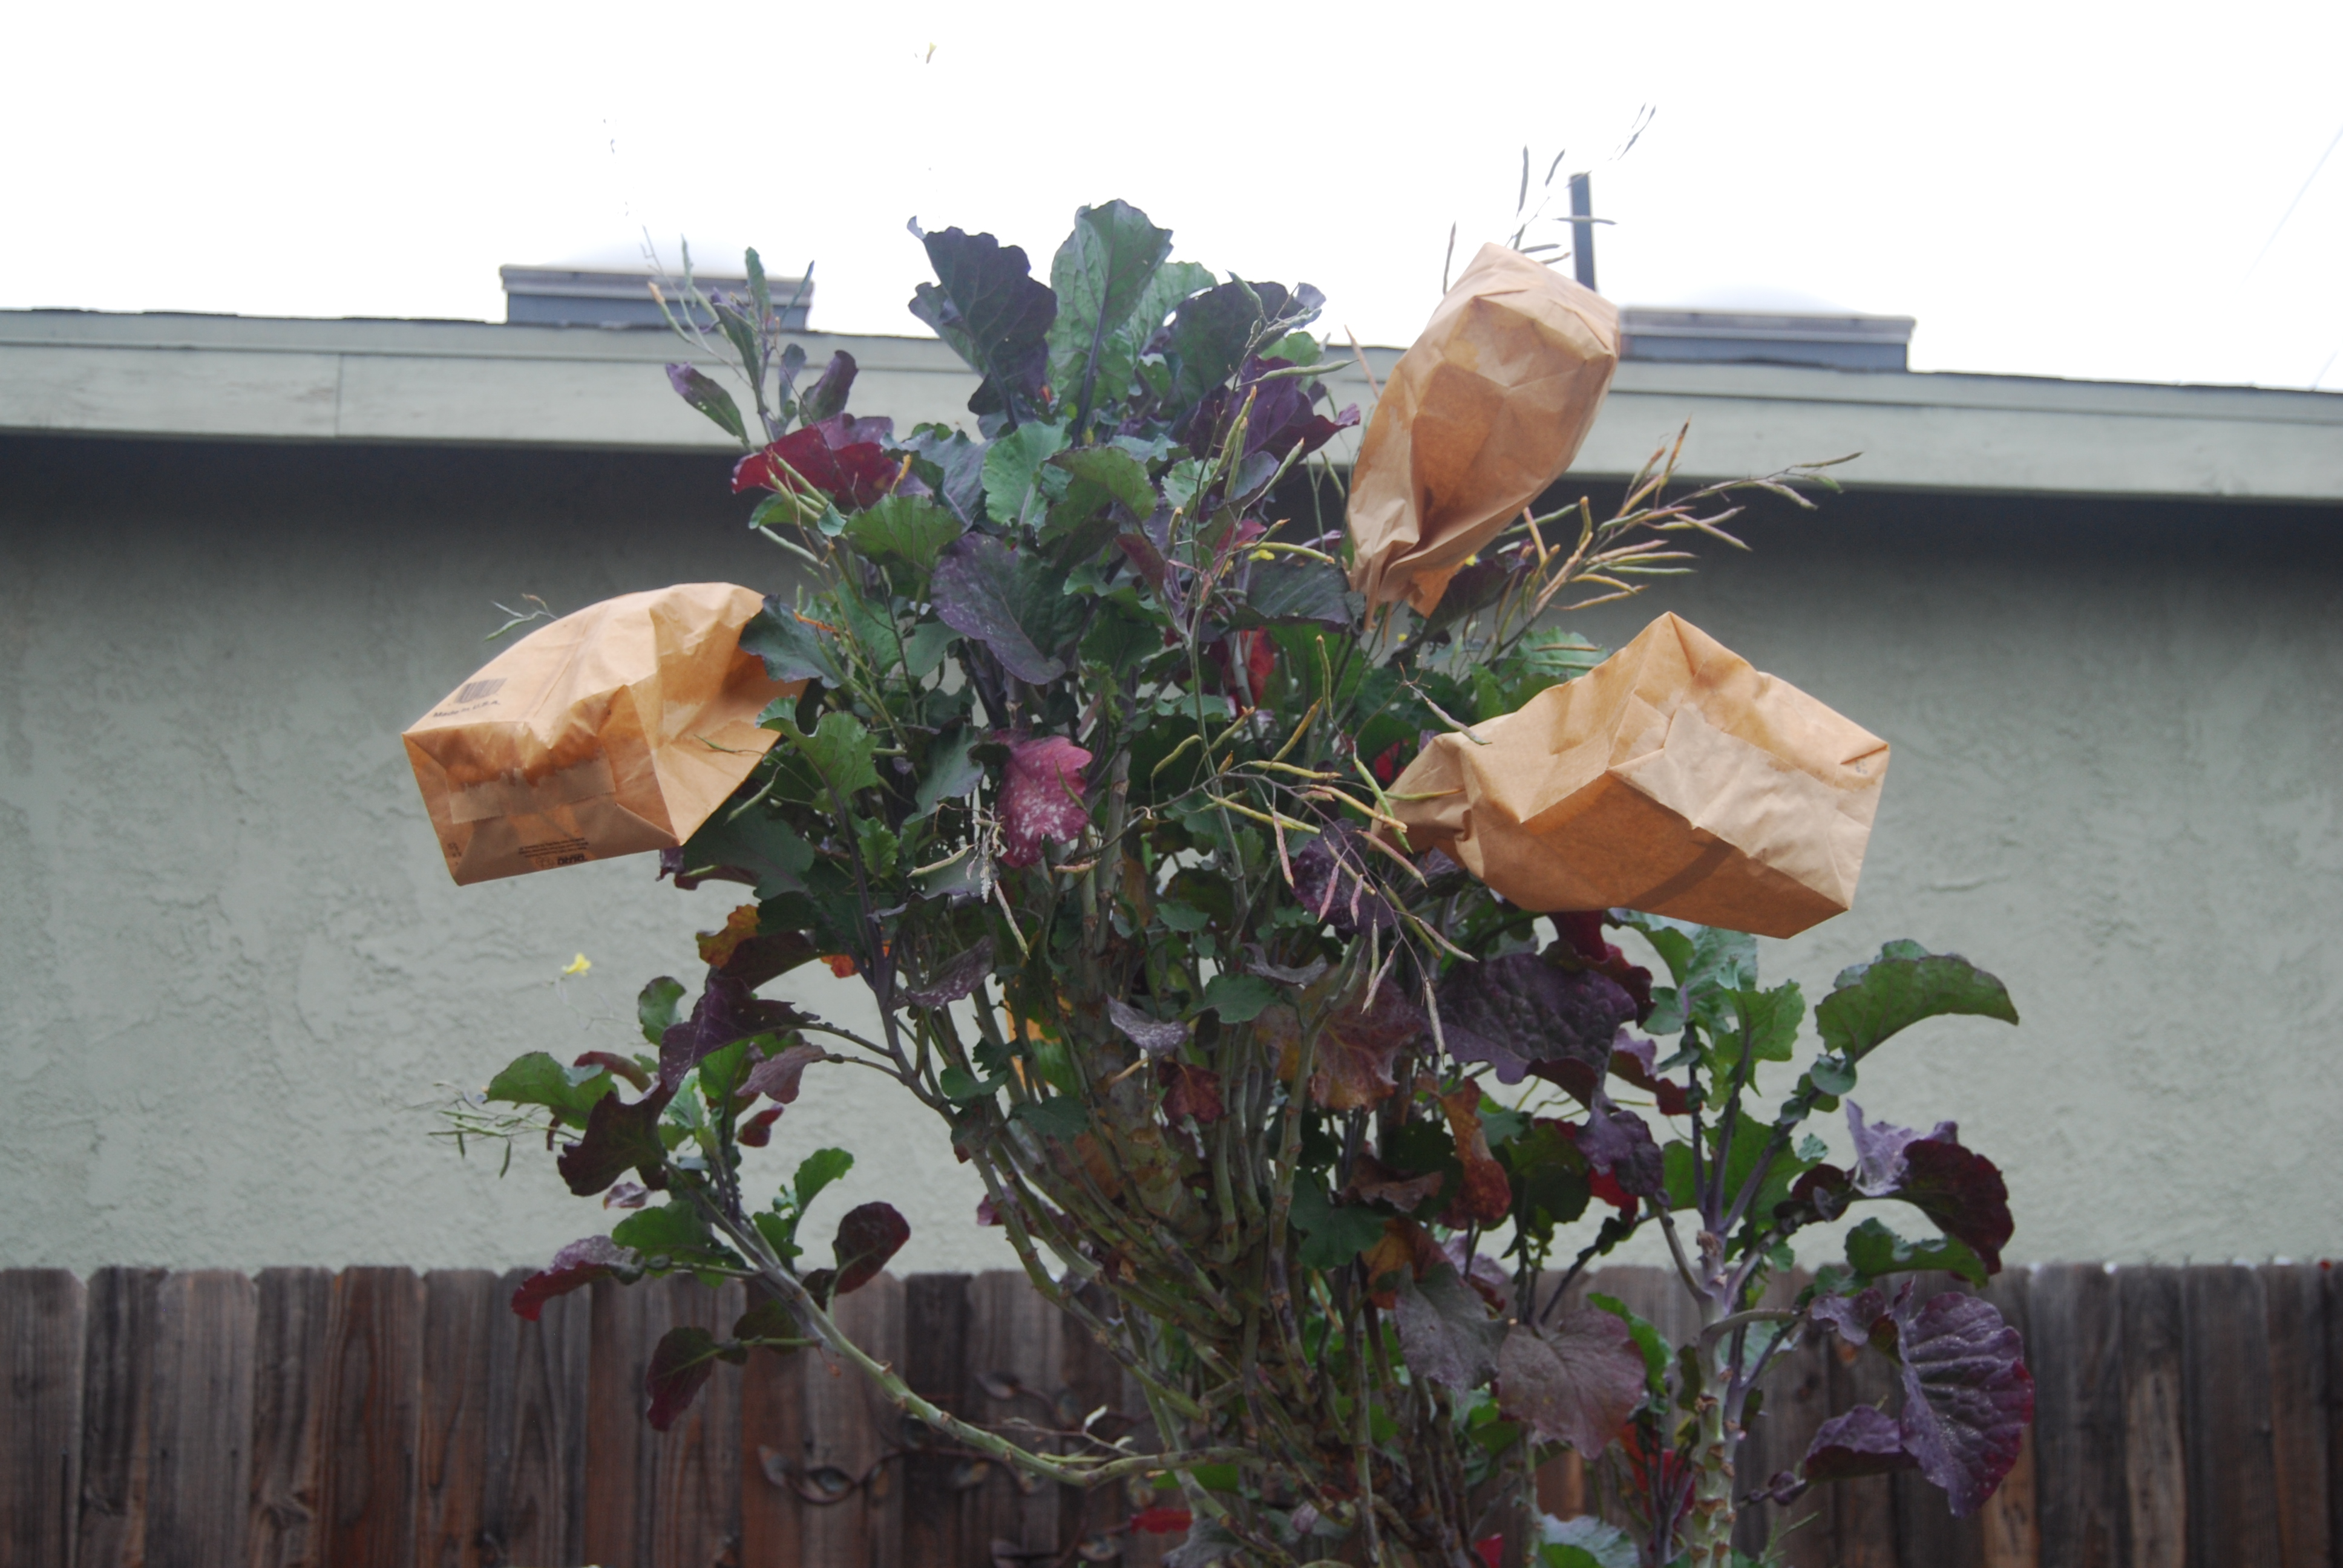 This tree kale was planted in 2013 from a cutting from Bountiful Gardens.